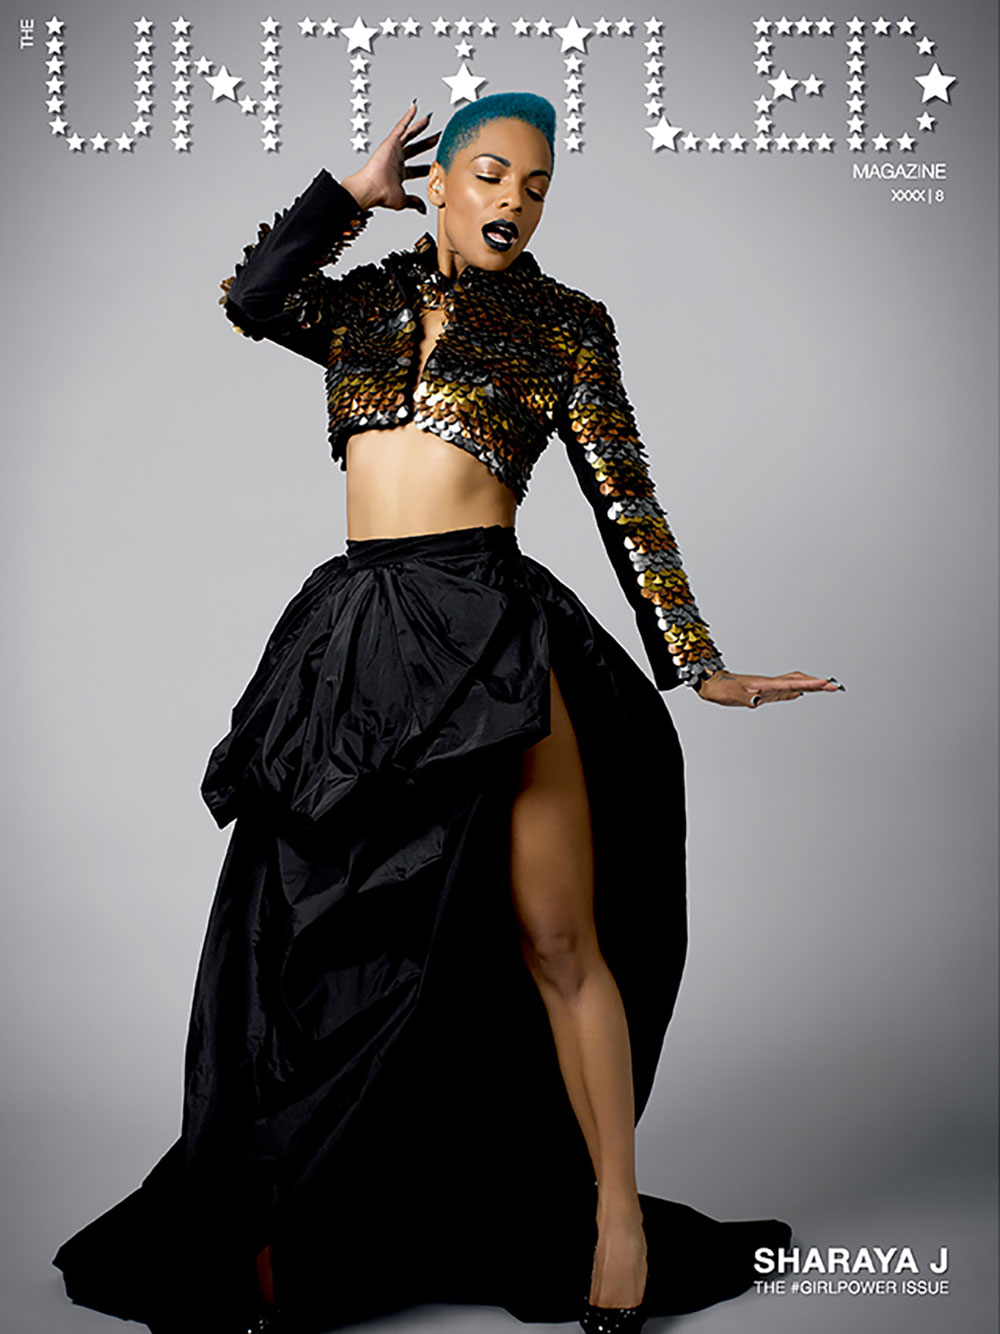 The Untitled Magazine GirlPower Issue - Sharaya J - Photography by Indira Cesarine - Cover